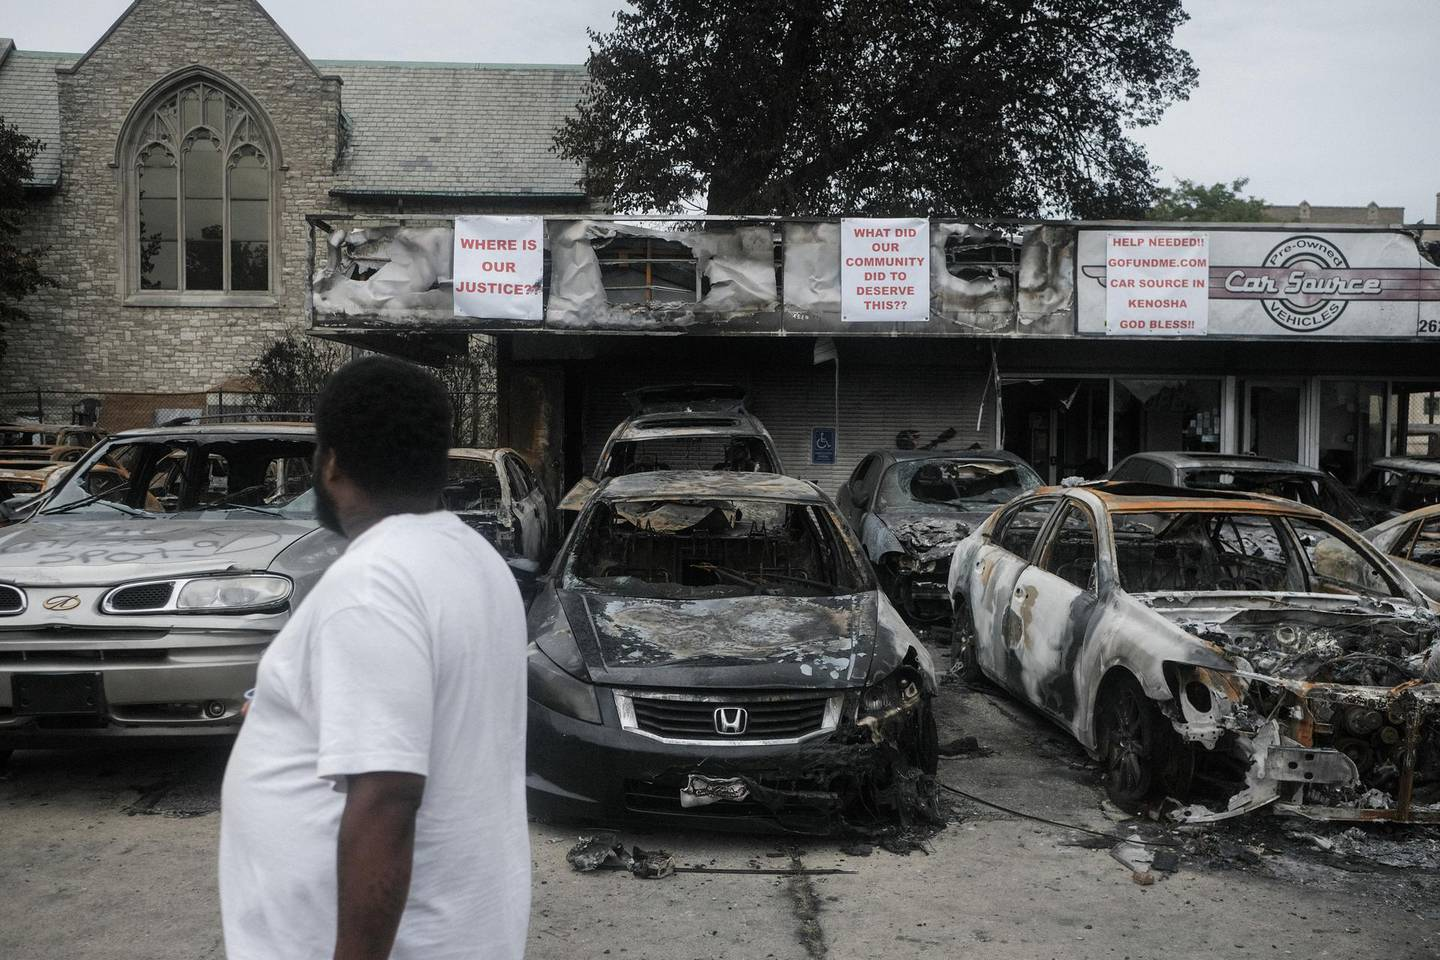 A resident inspects burned out cars at a used car dealership in Kenosha, Wisconsin, U.S., on Tuesday, Sept. 1, 2020. Donald Trump lauded police and National Guard members in Kenosha, Wisconsin, on Tuesday, where the shooting of a Black man by police last month has reignited national protests against racial inequality and street violence the president has sought to blame on Democrats. Photographer: Matthew Hatcher/Bloomberg